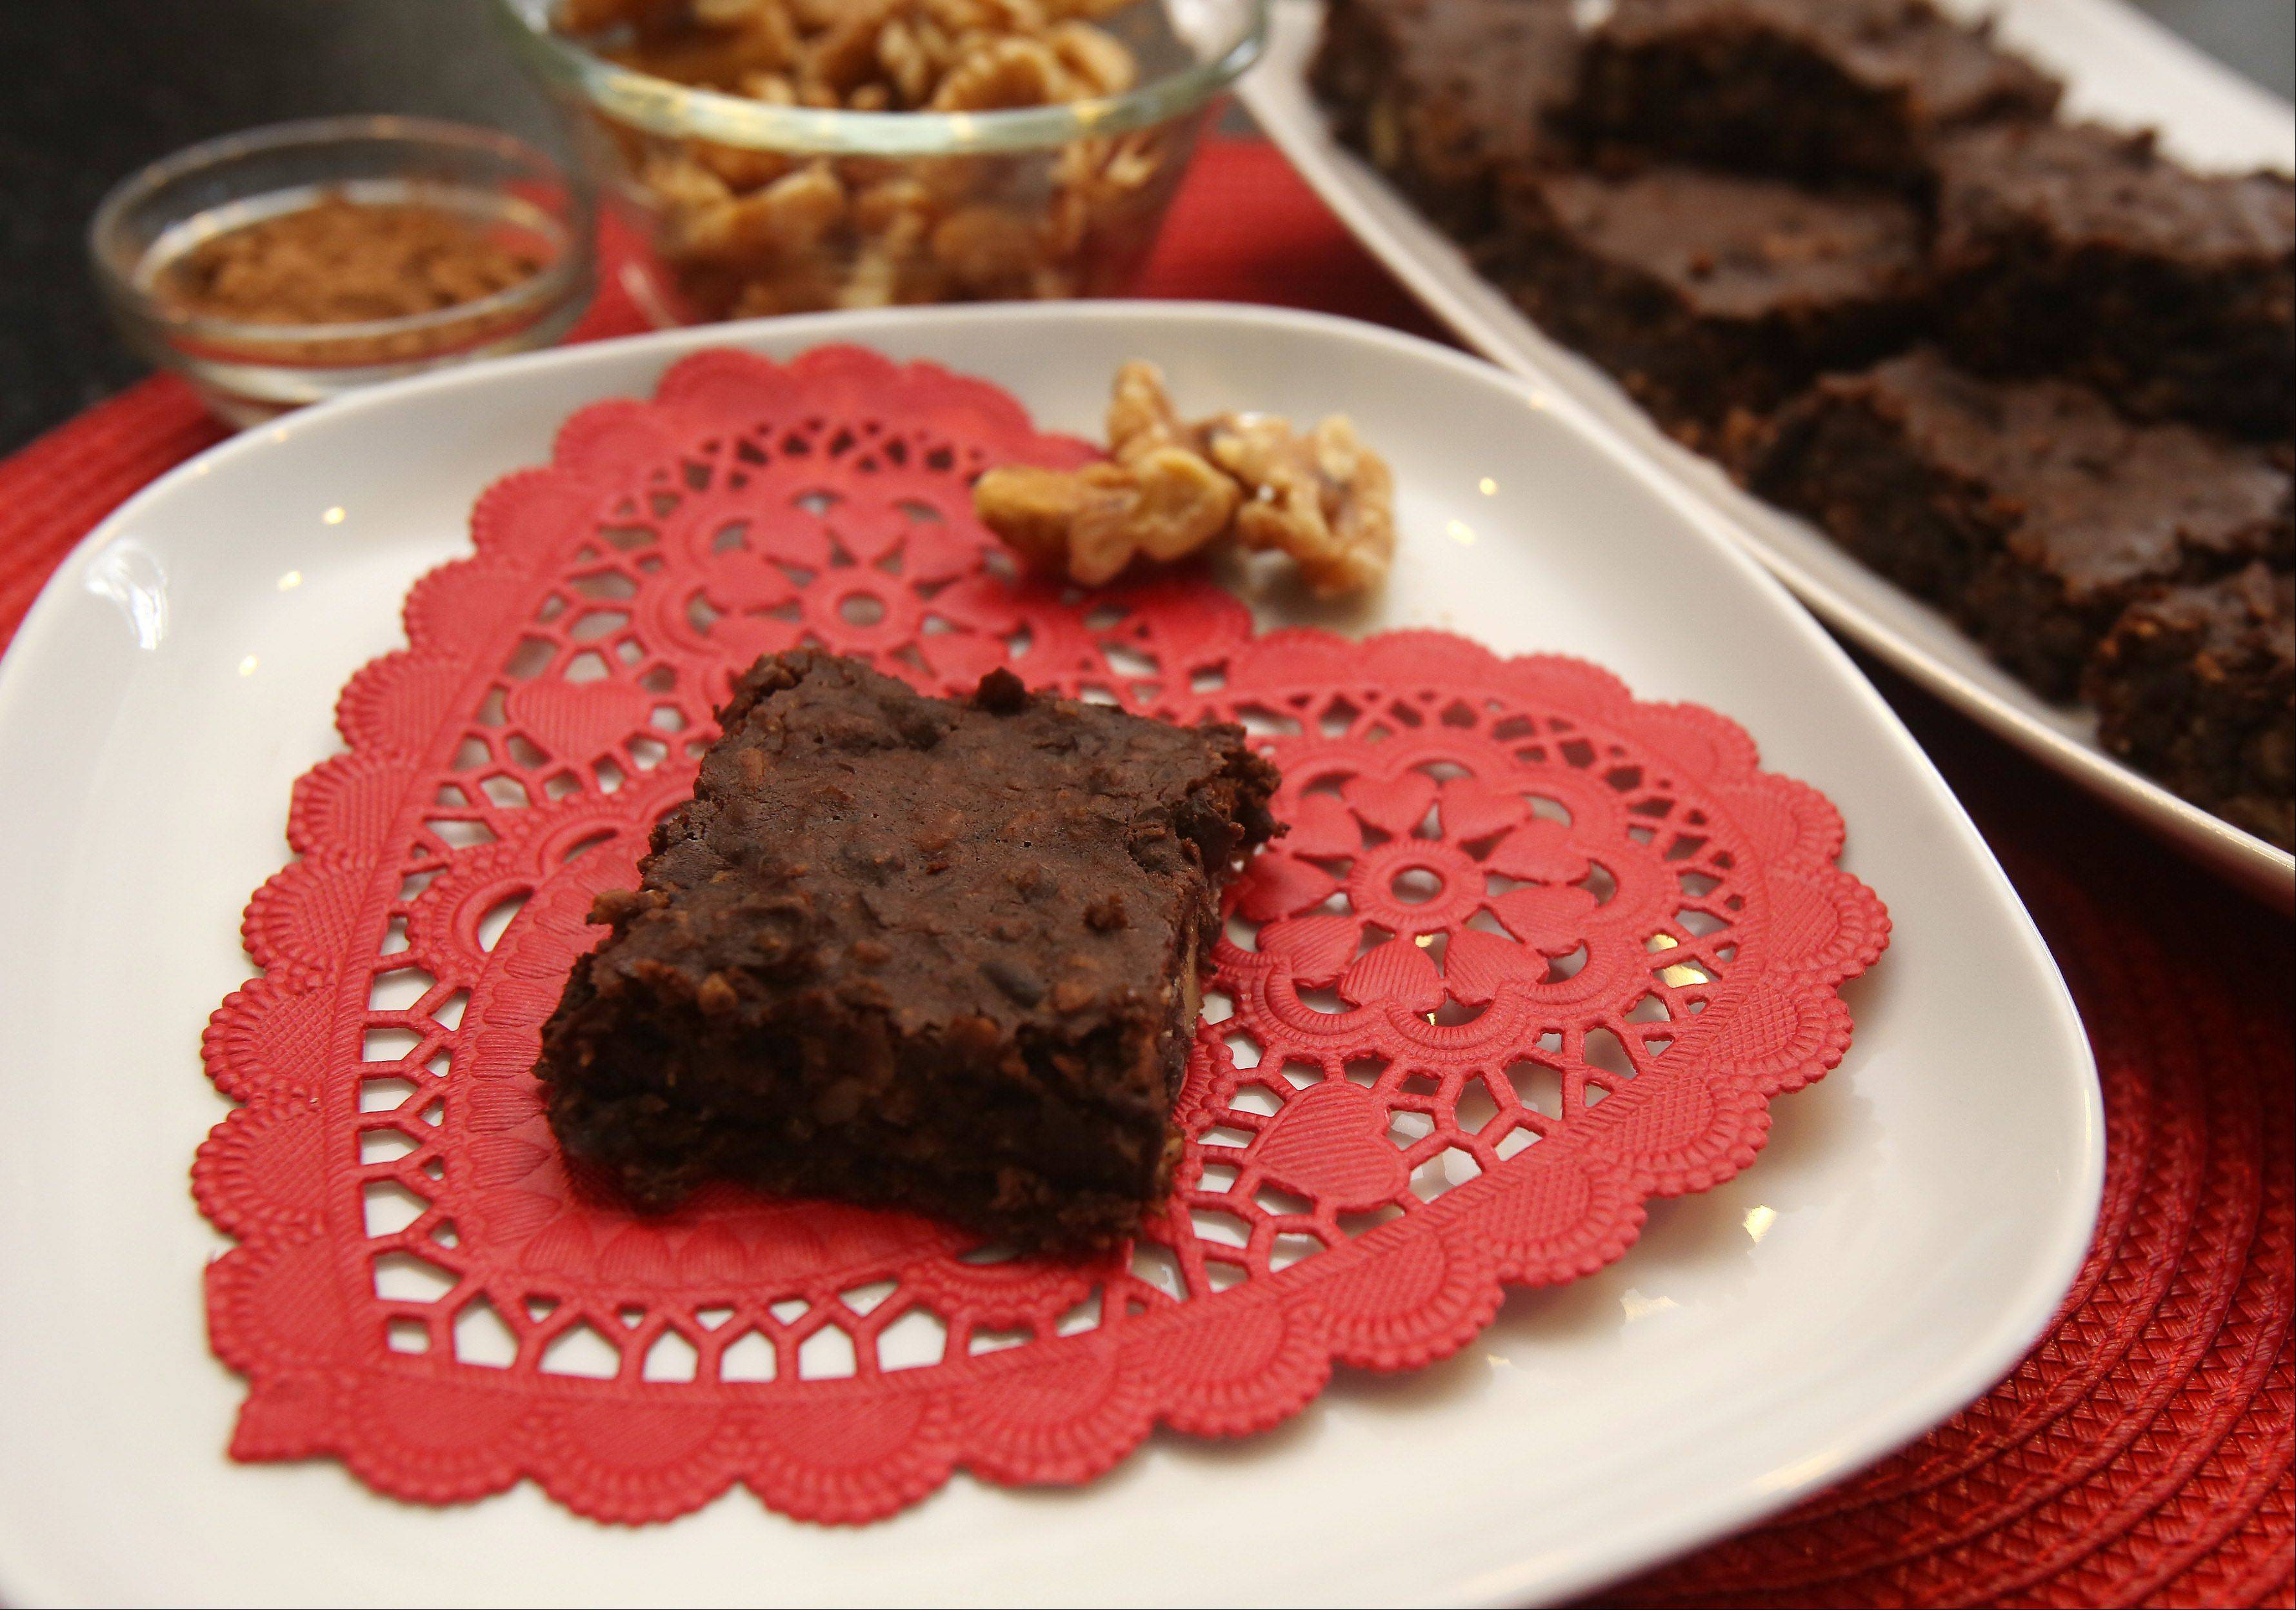 Dark cocoa and black beans make this Valentine's Day brownie good for your sweetheart and your sweetheart's heart.